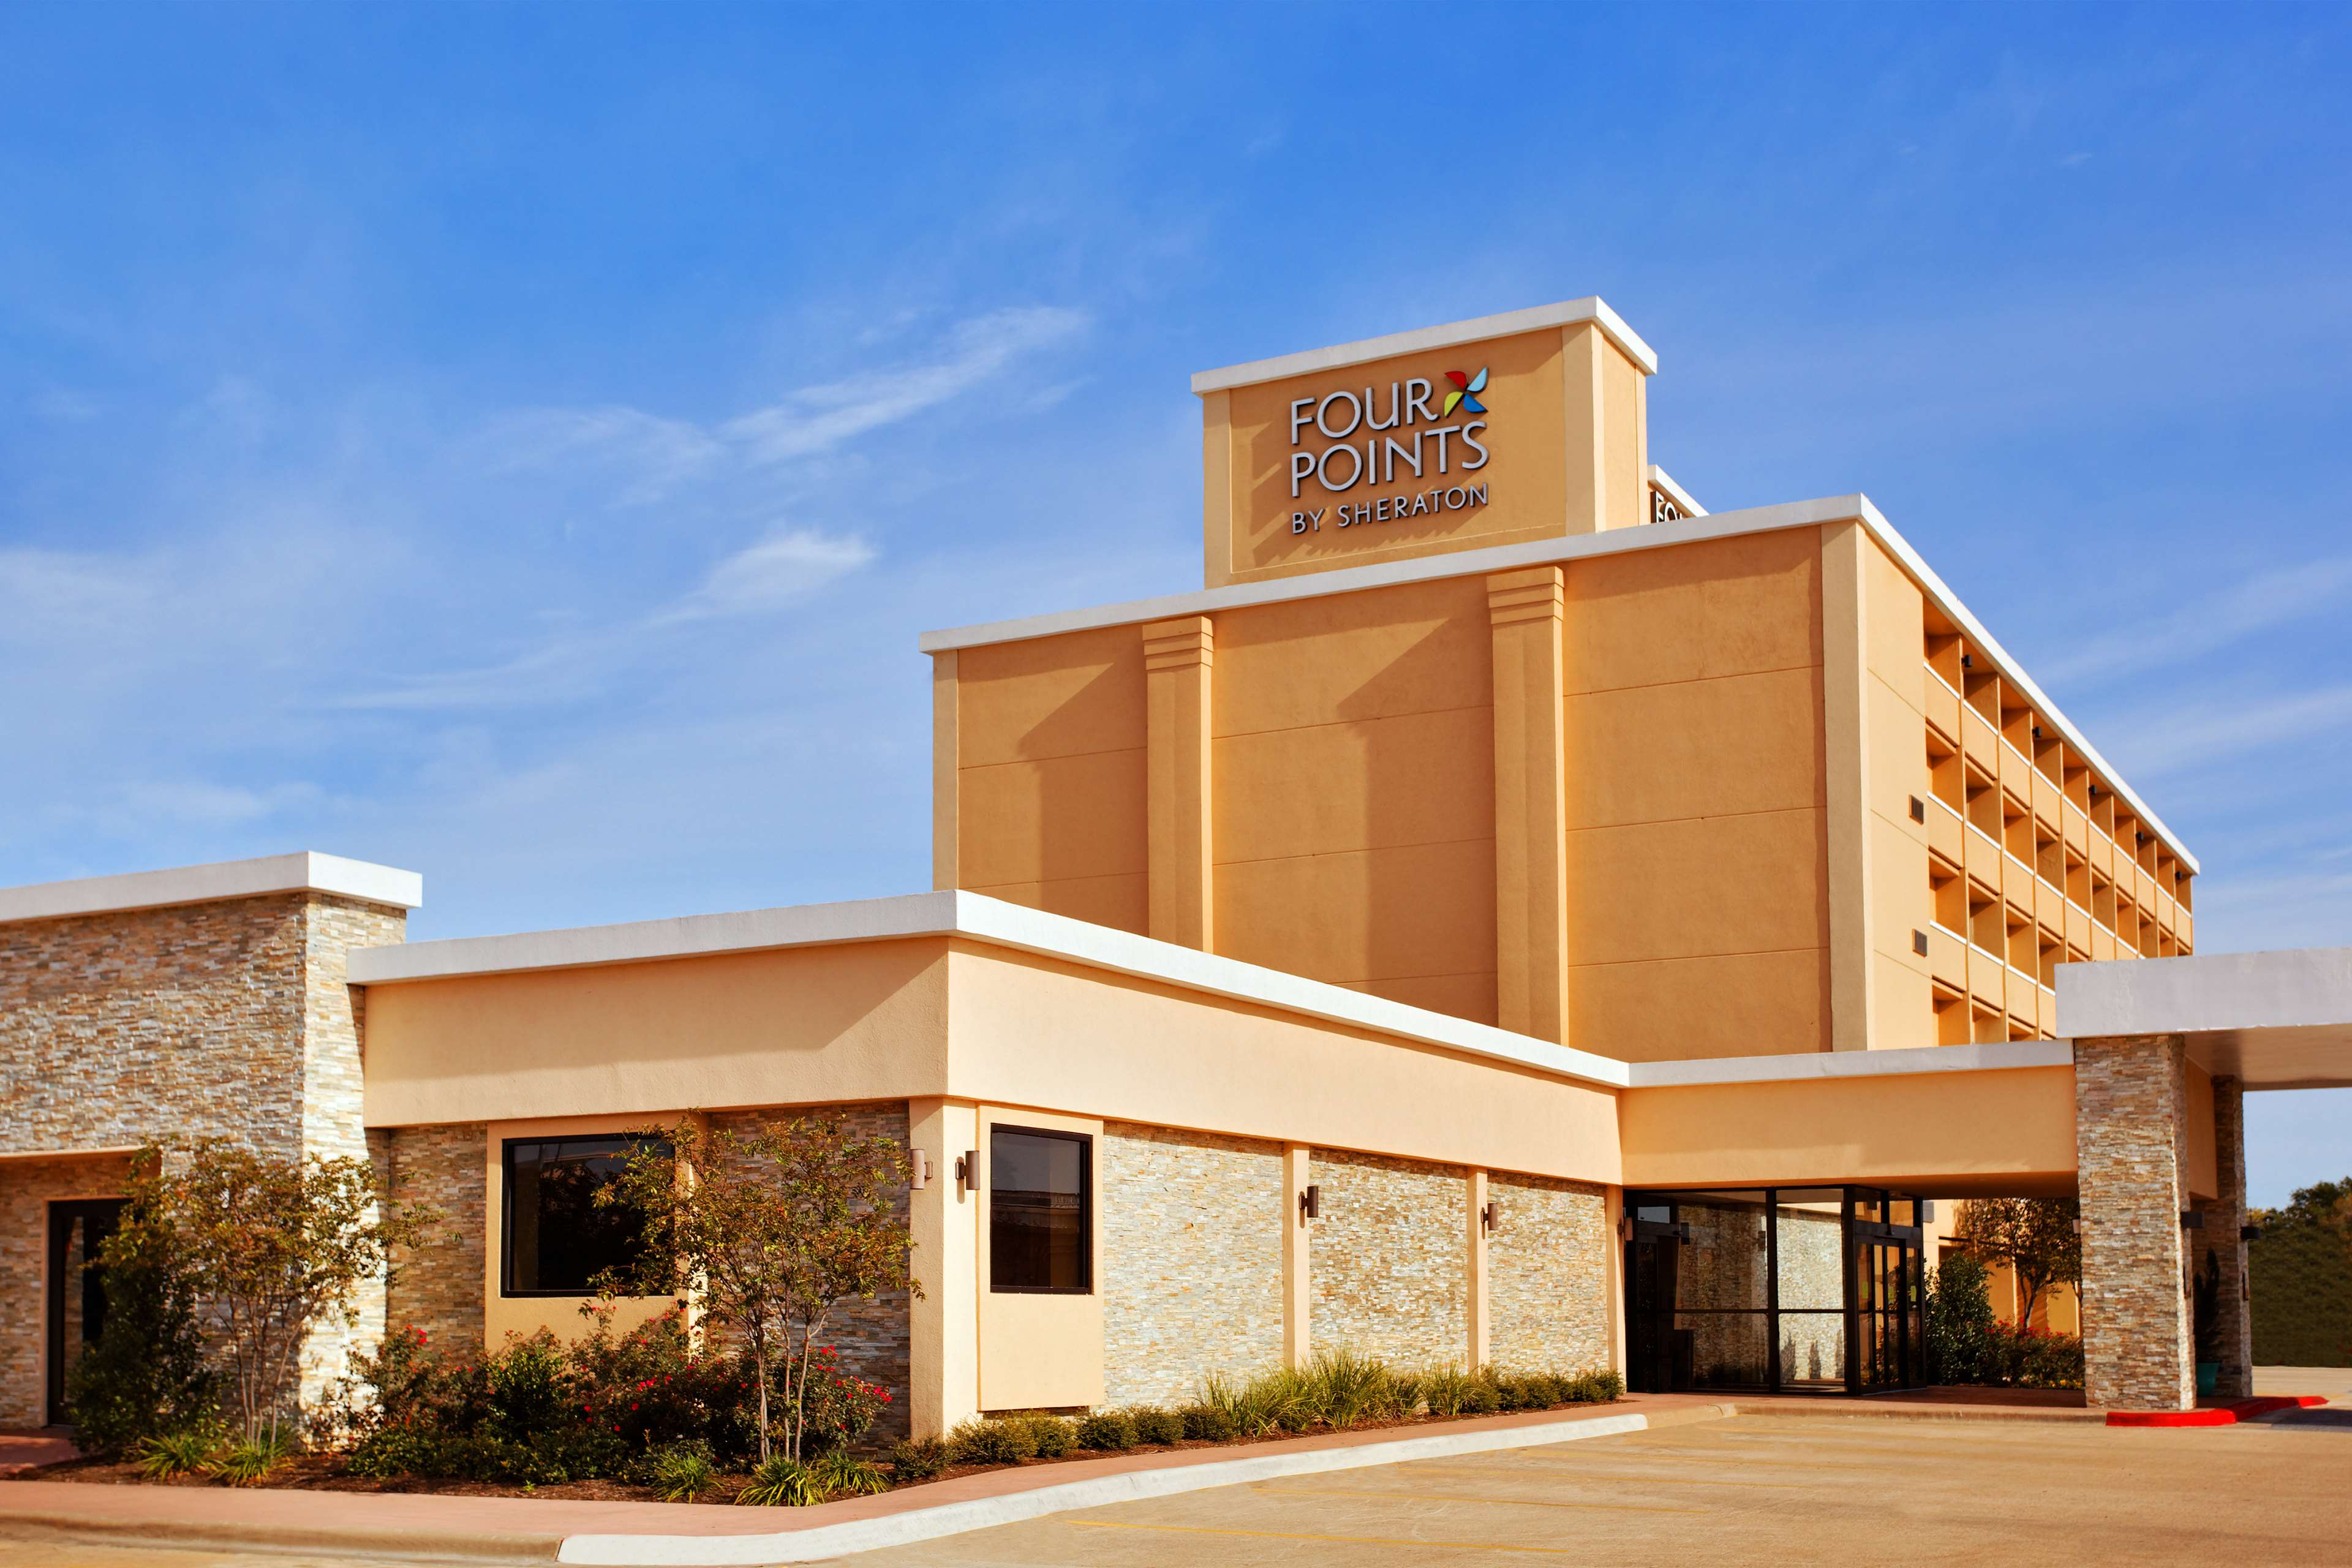 Four Points by Sheraton College Station image 1